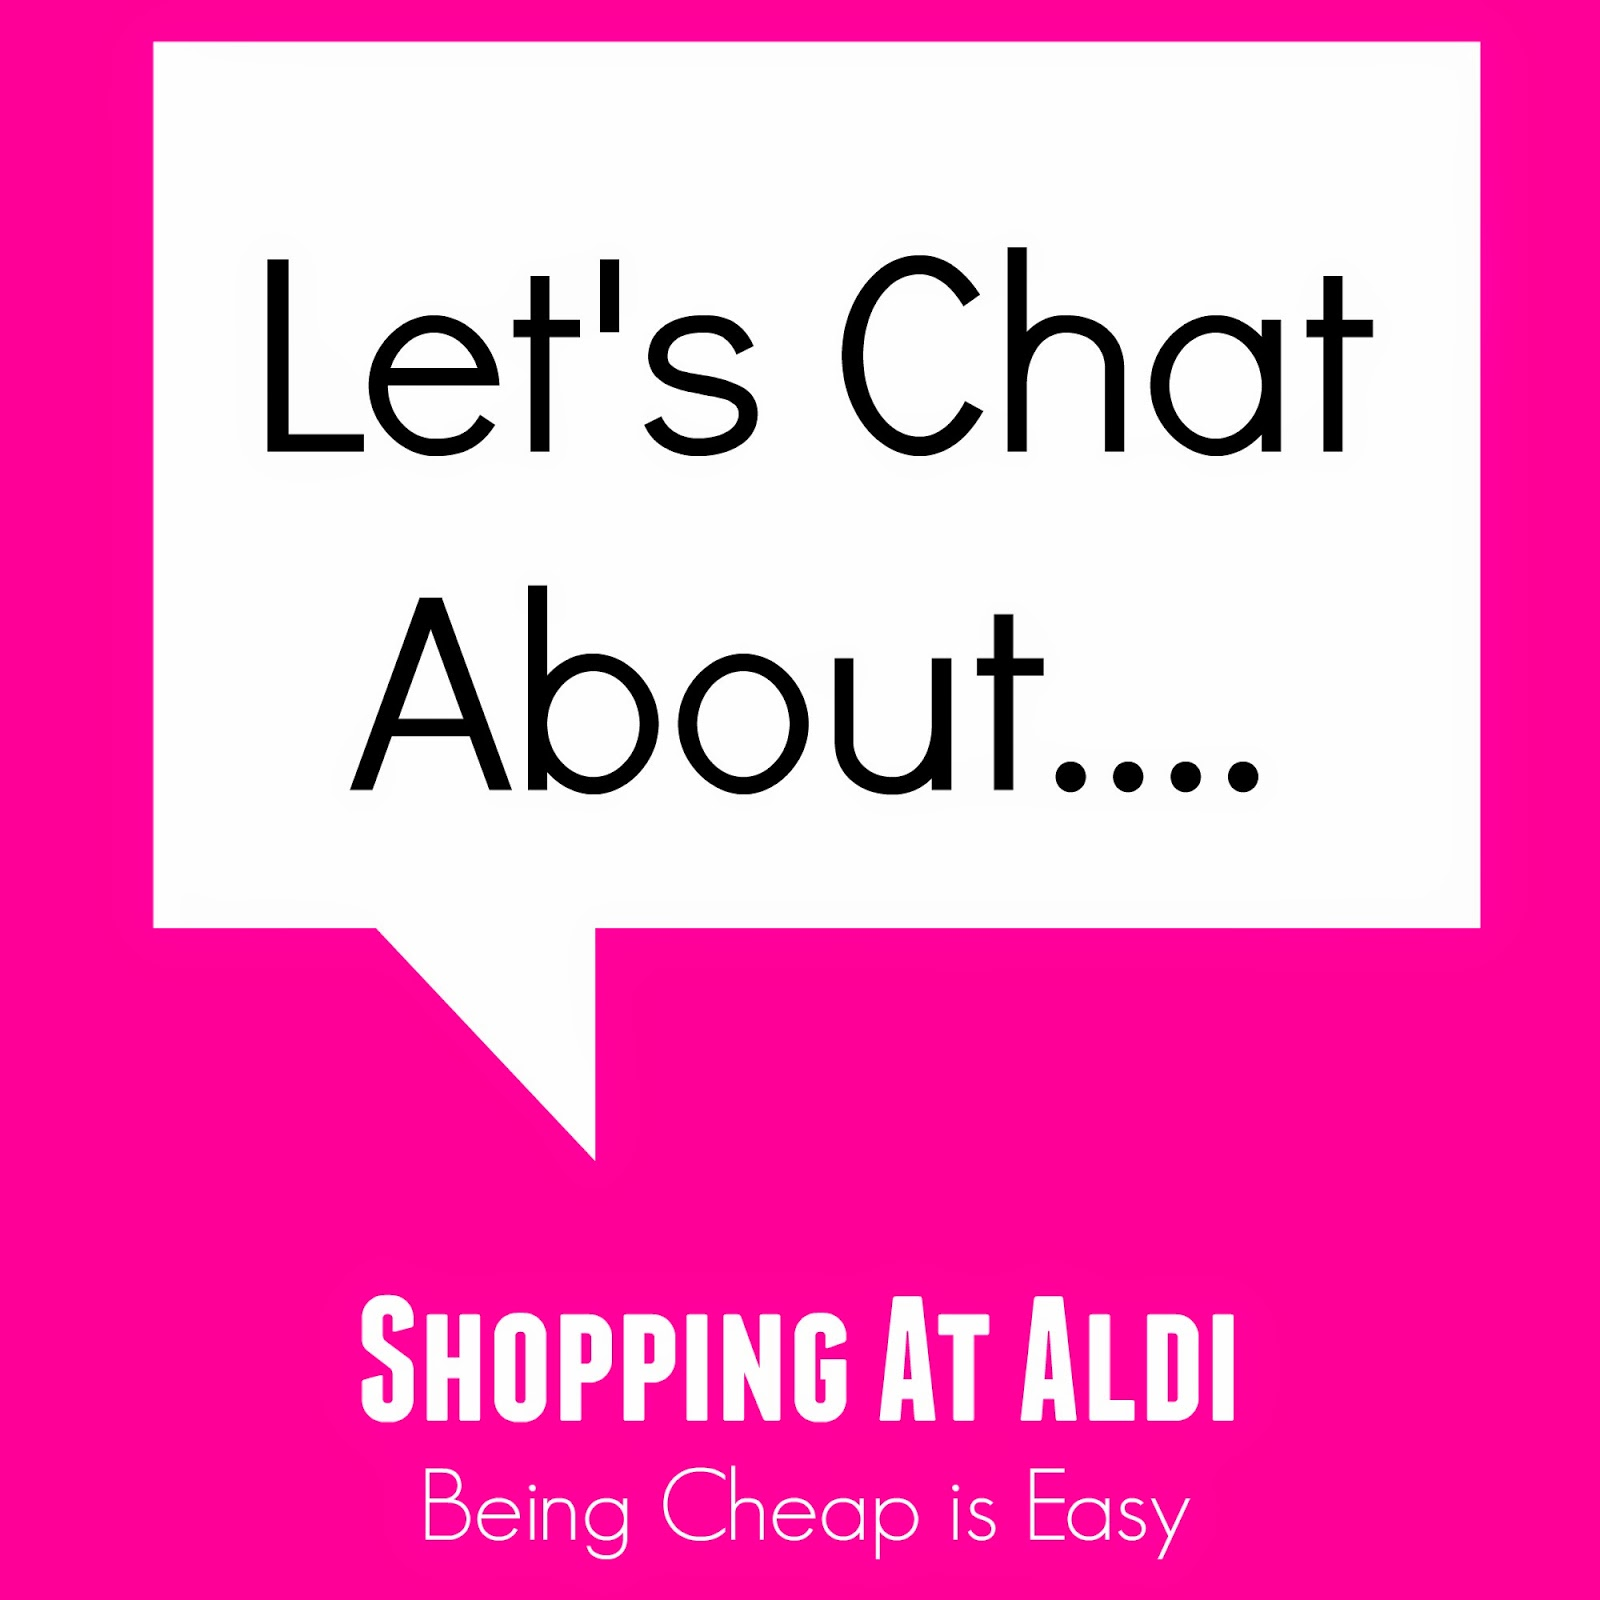 Aldi, Grocery Shopping, #letschat, Budget, Groceries